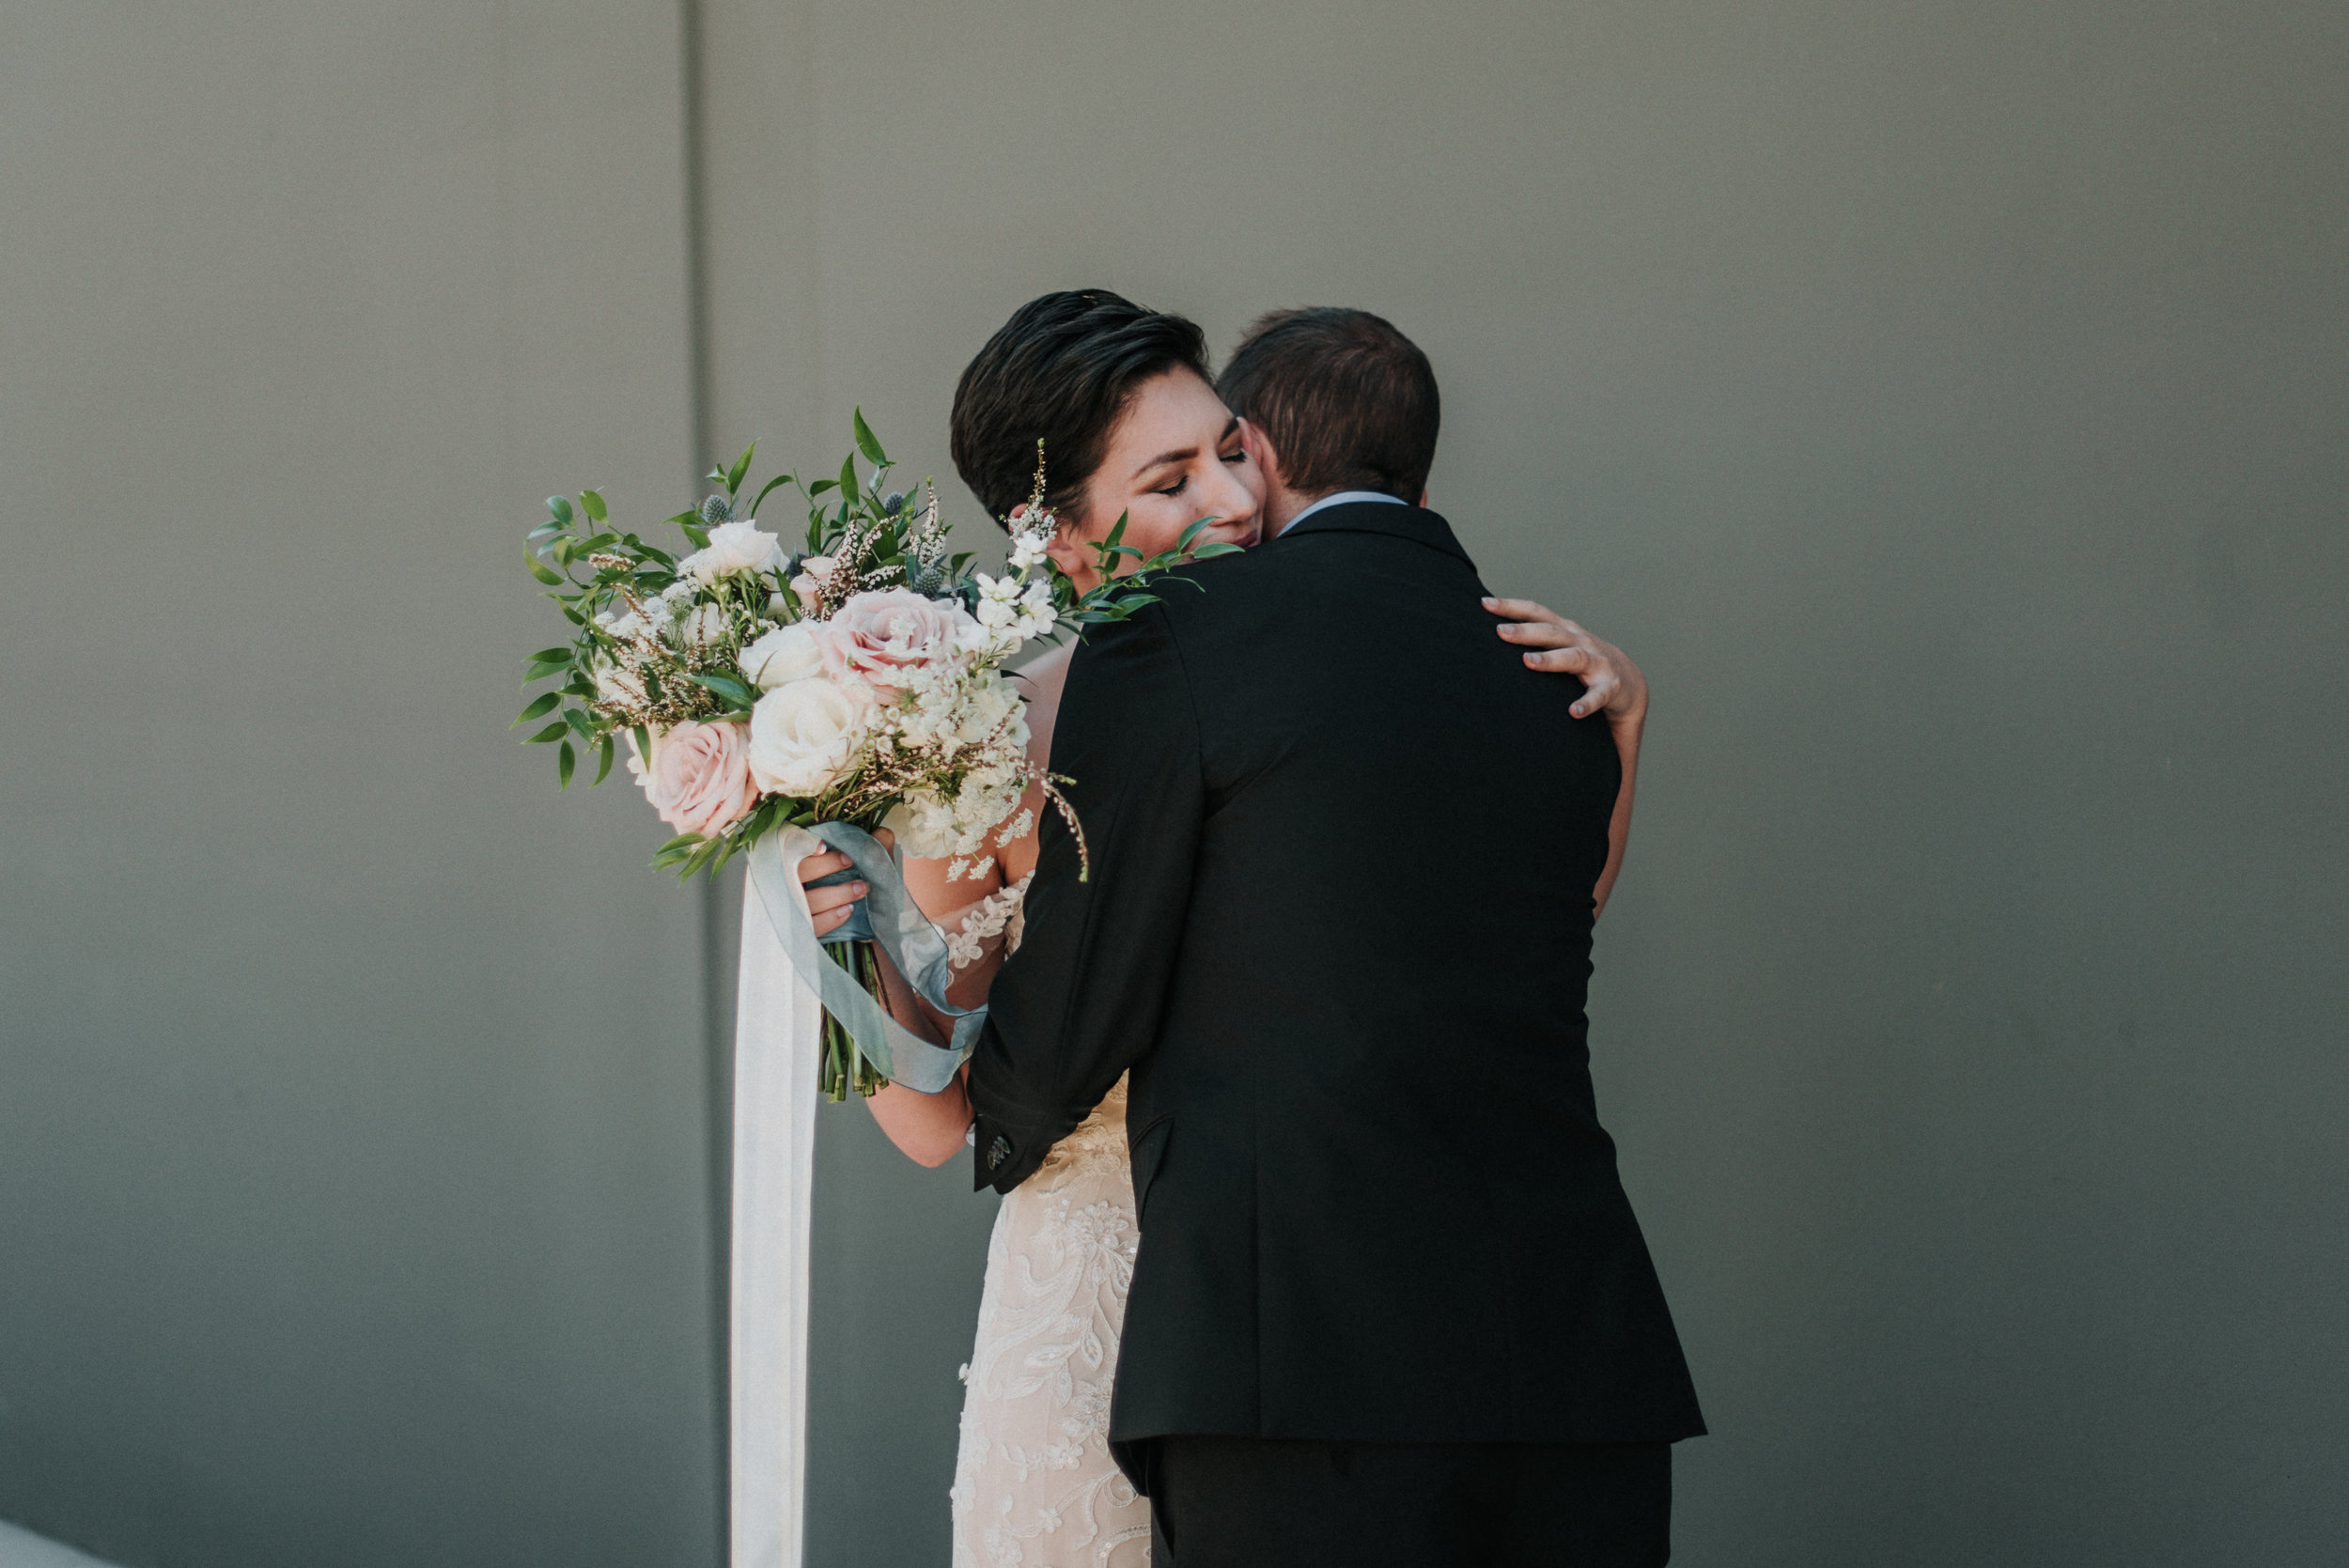 2019-07-21_Danielle_and_Brandon_-_Married_-_Costa_Mesa-118.jpg